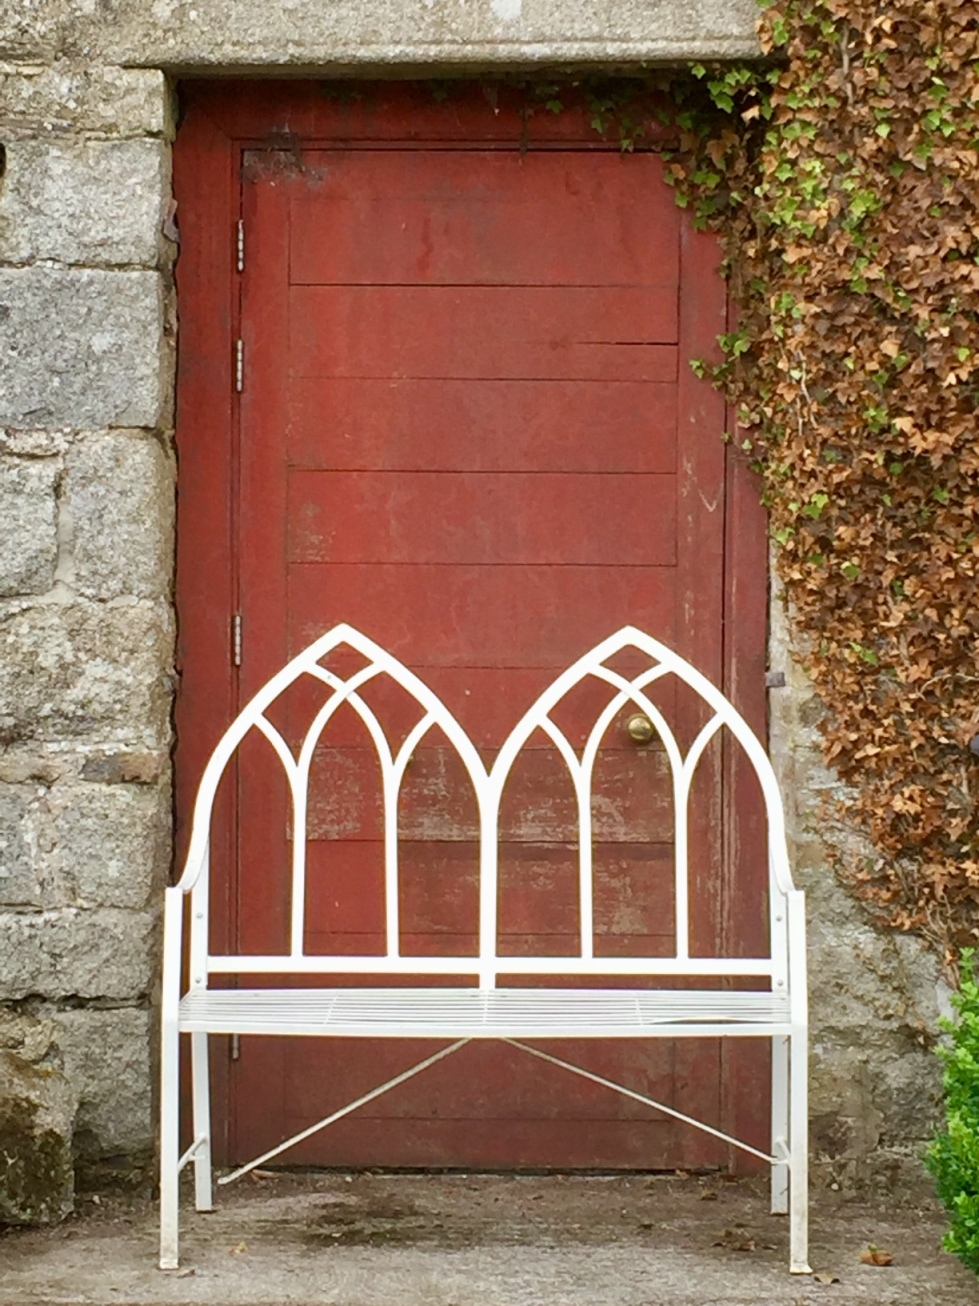 This old red door inspired the one in 'The Neglected Garden'. The photo was taken at Duckett's Grove in Co. Carlow in Ireland where two interconnecting walled gardens have been restored and are open to the public.